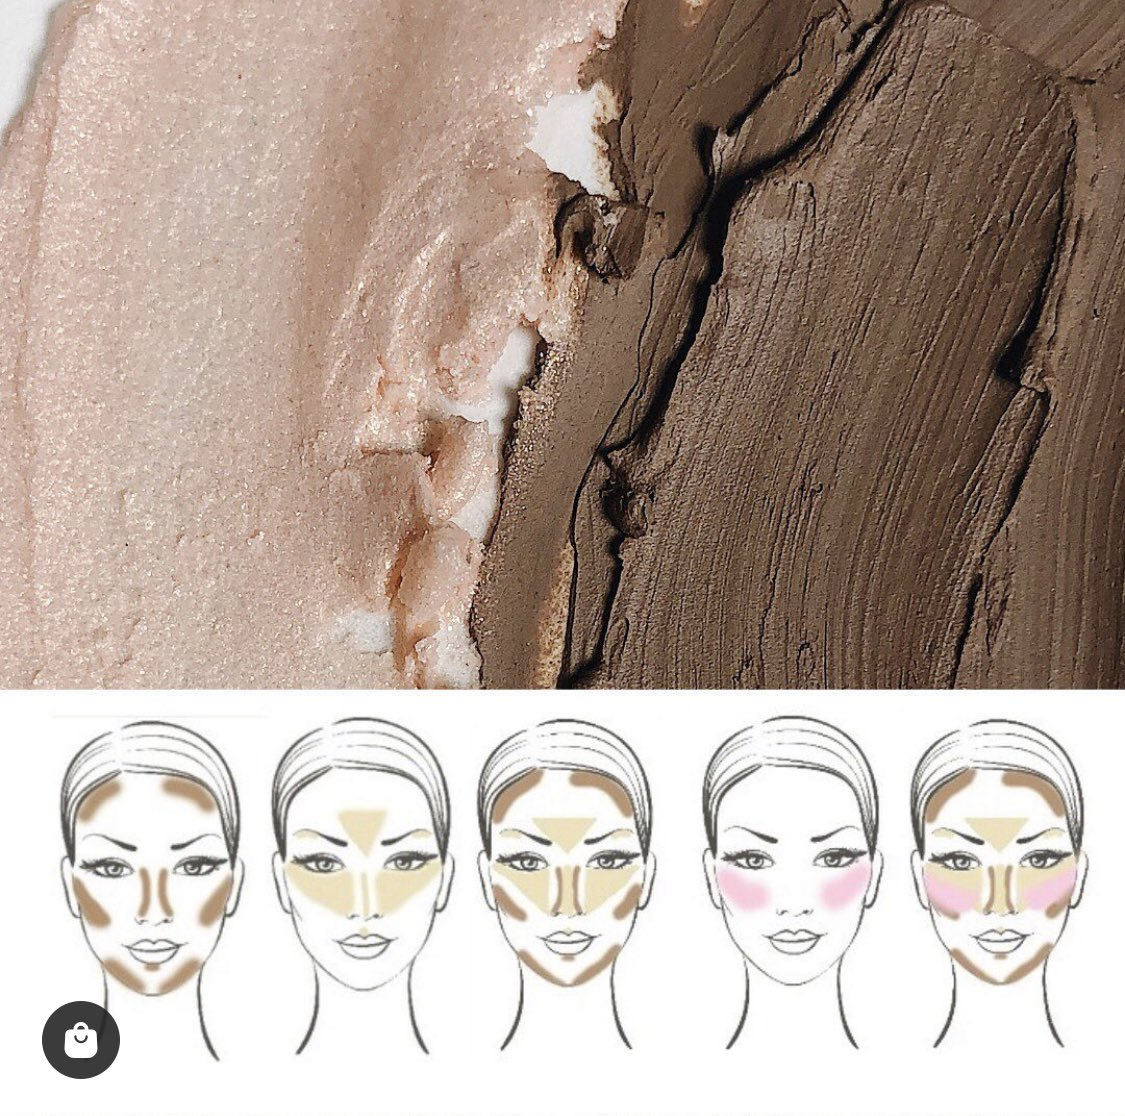 Our Sculpt and Shine Beauty Baton is our best seller and influencer fave for a champagne highlight and a cool contour 🤩 Here's a guide to show you exactly how to use this magic baton   #makeupinspo #beautyproduct #indiebeauty #veganskincare